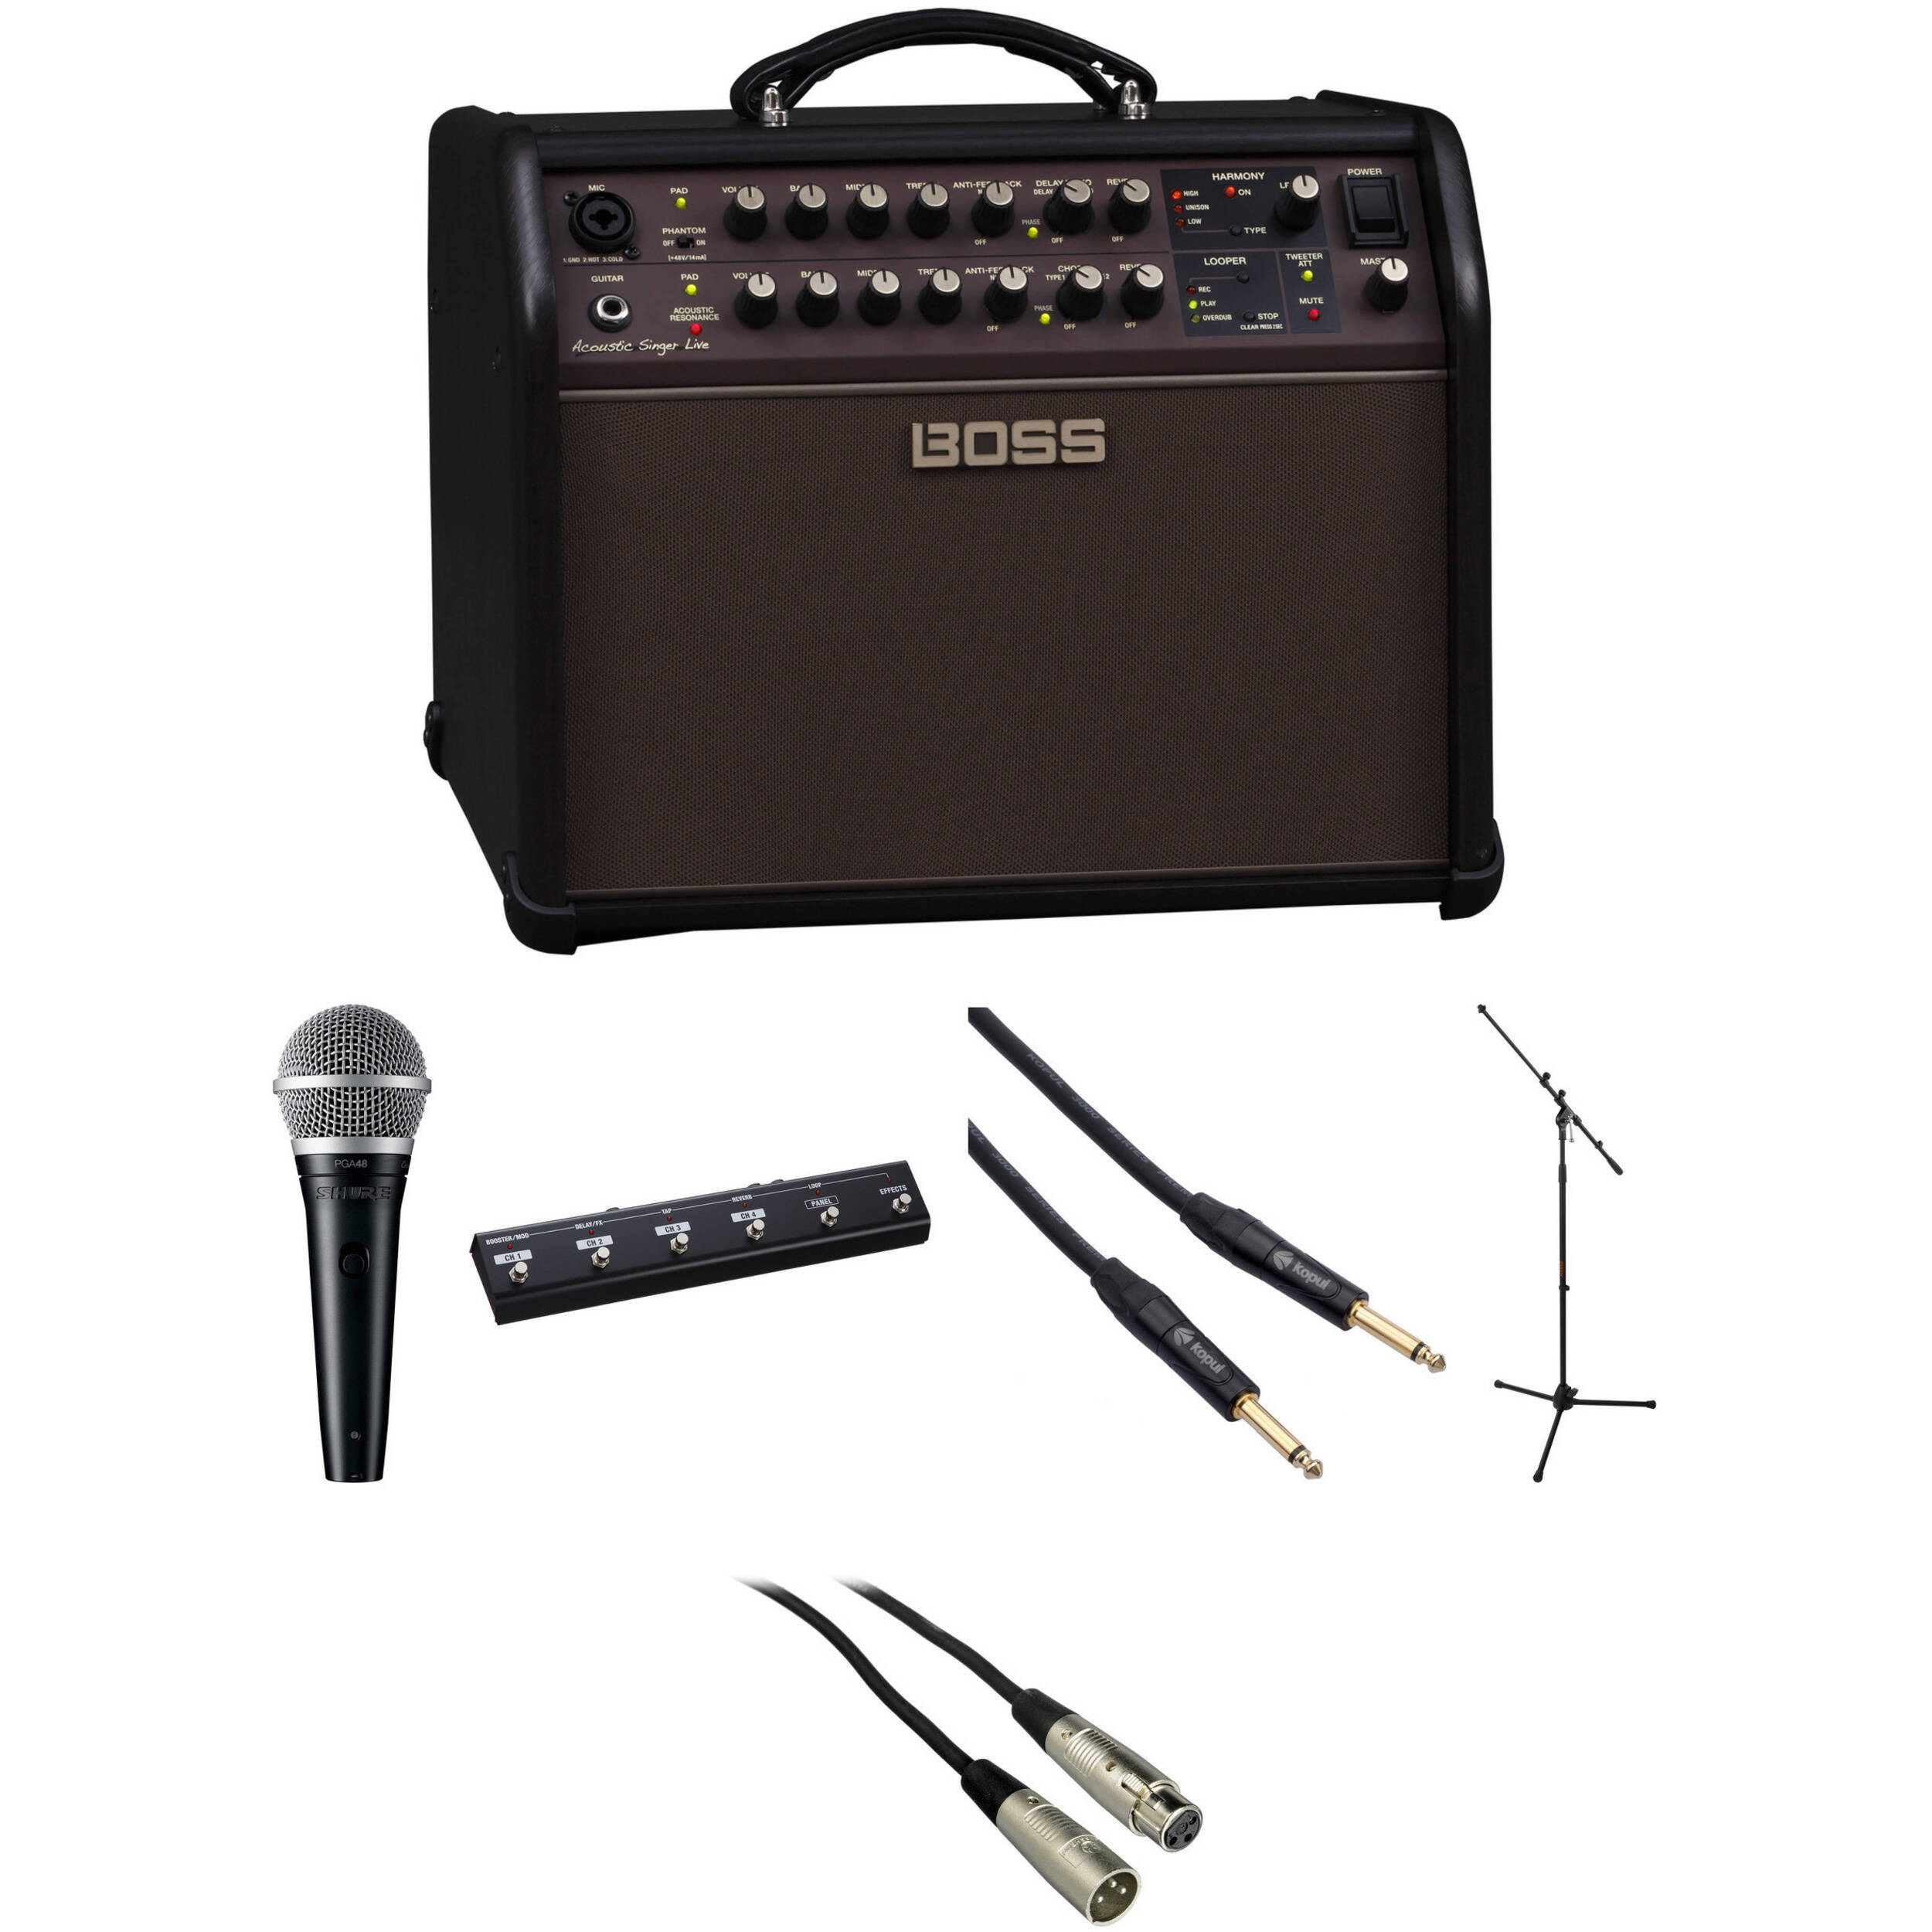 boss acs live 60w combo amp kit with shure microphone and more. Black Bedroom Furniture Sets. Home Design Ideas